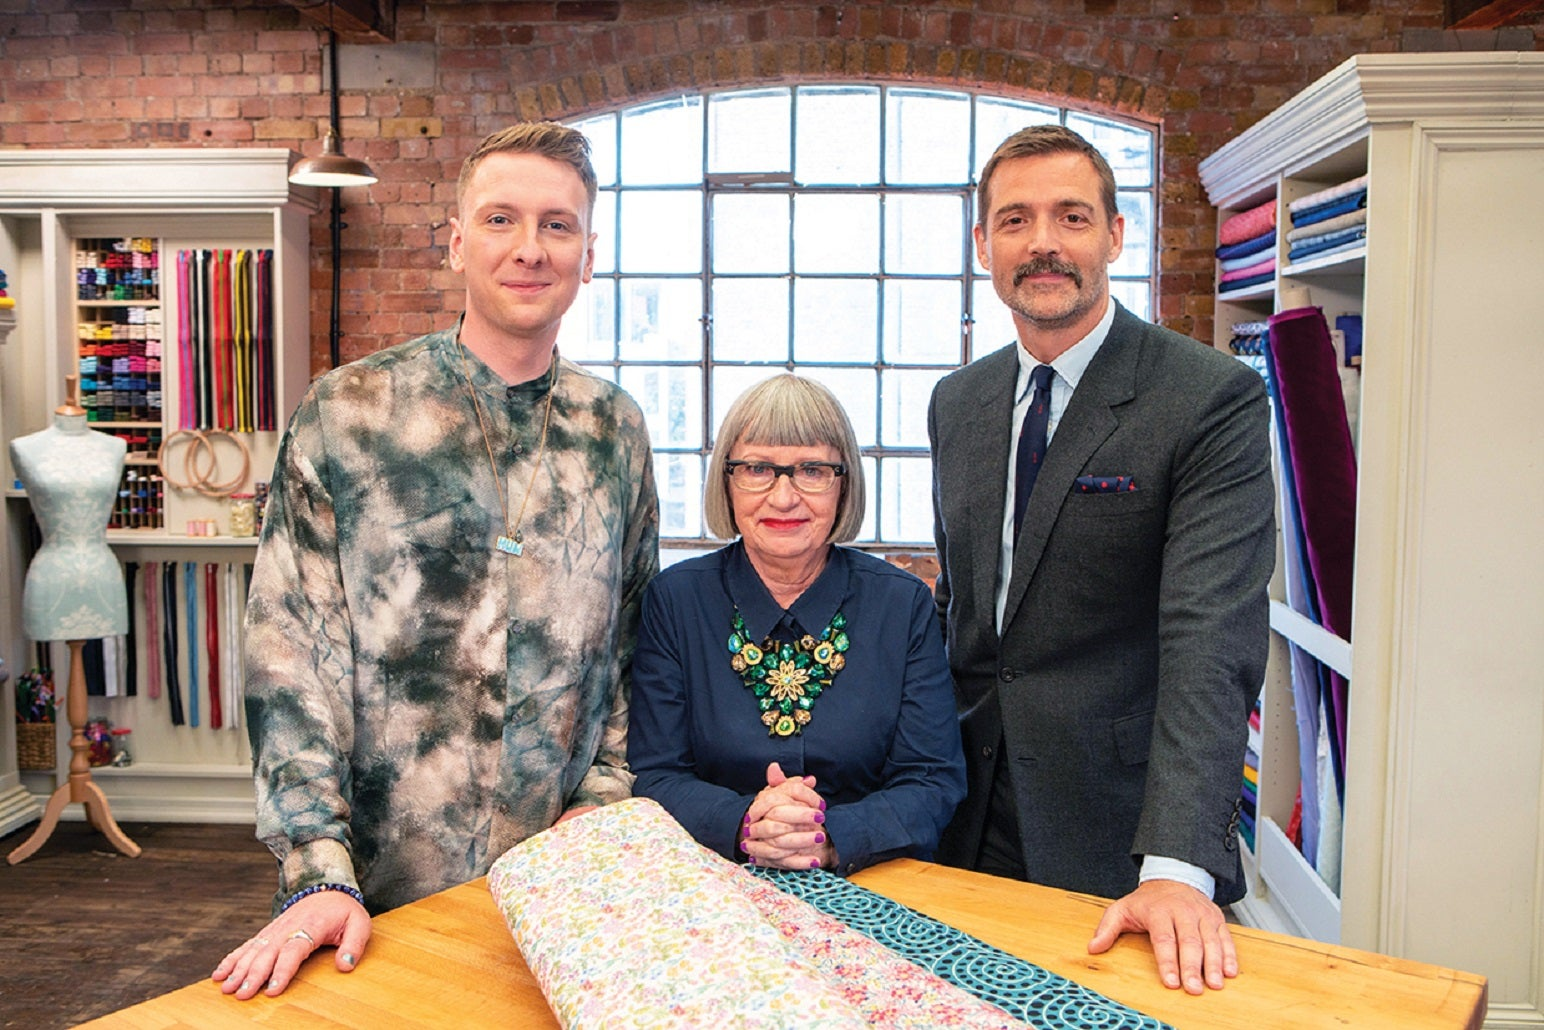 Why The Great British Sewing Bee is perfect lockdown television